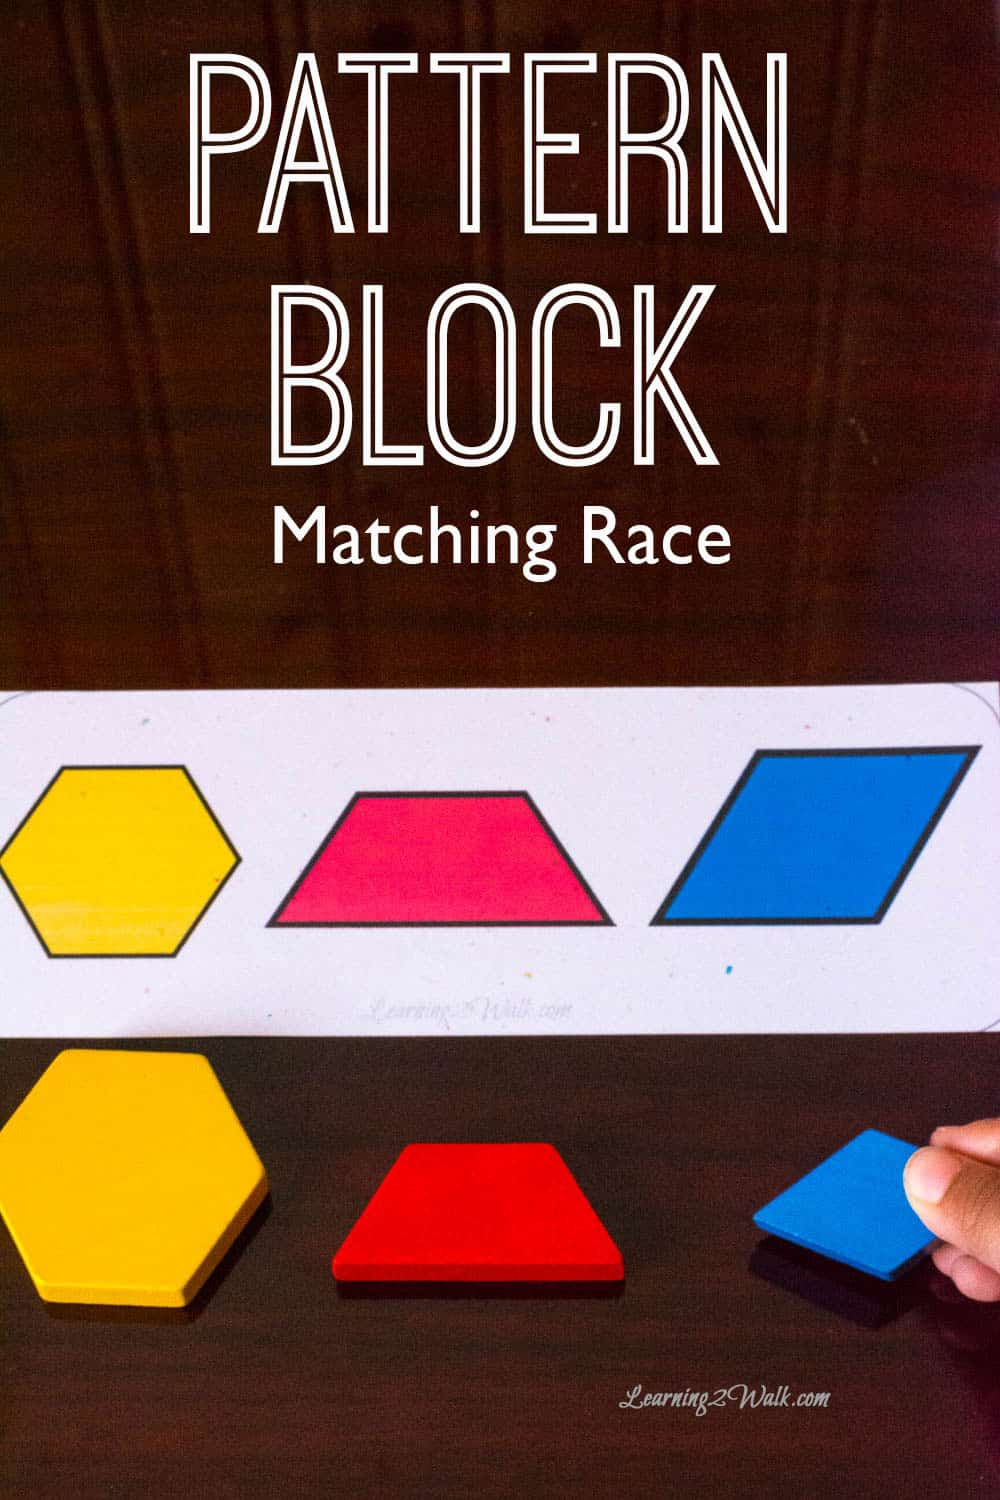 These pattern block matching race cards are a sure way to help your kids work on mathcing patterns